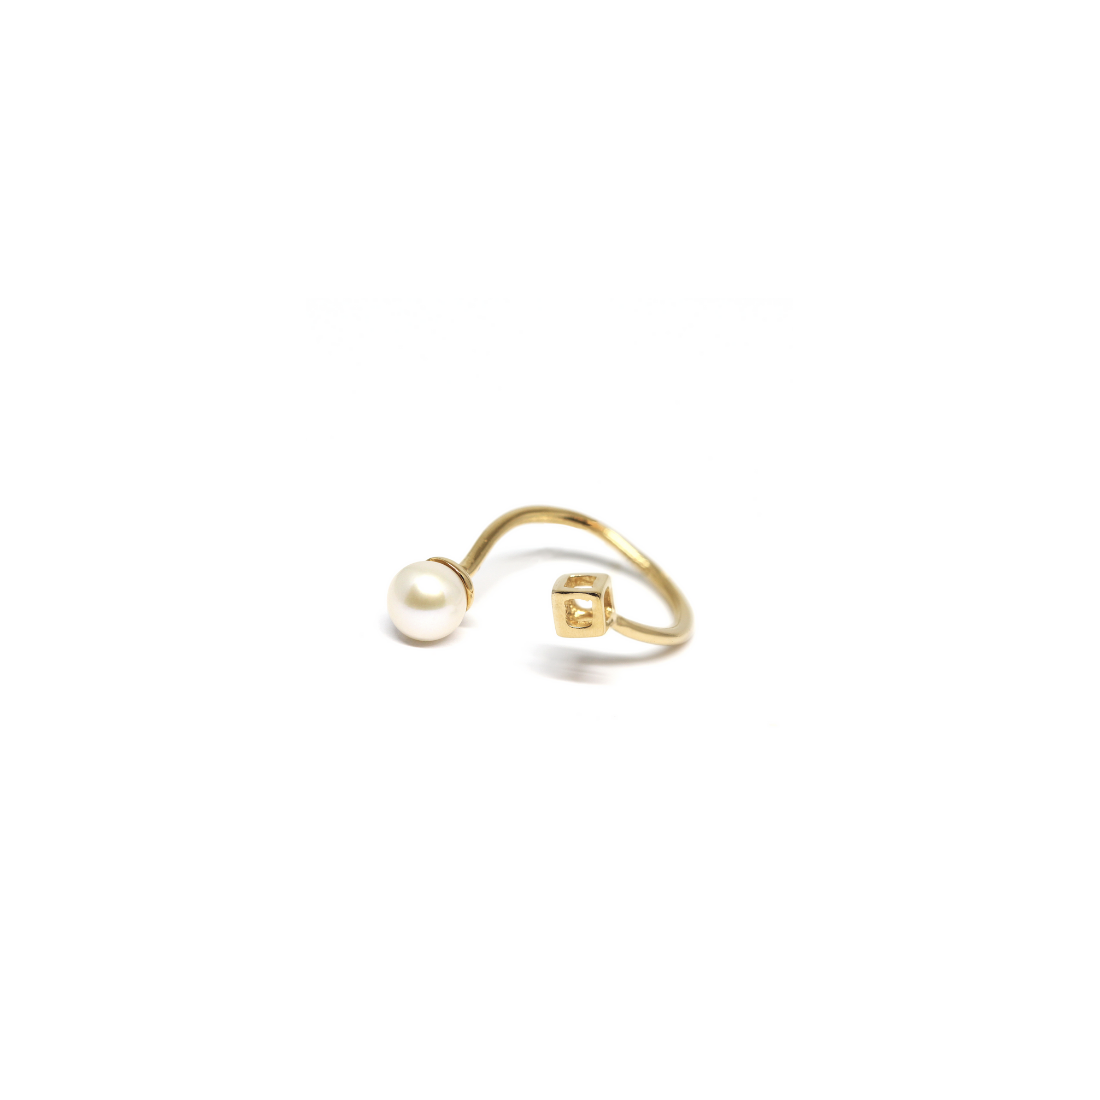 Livresse Cube Ring 925 Gold Plated Sterling Silver